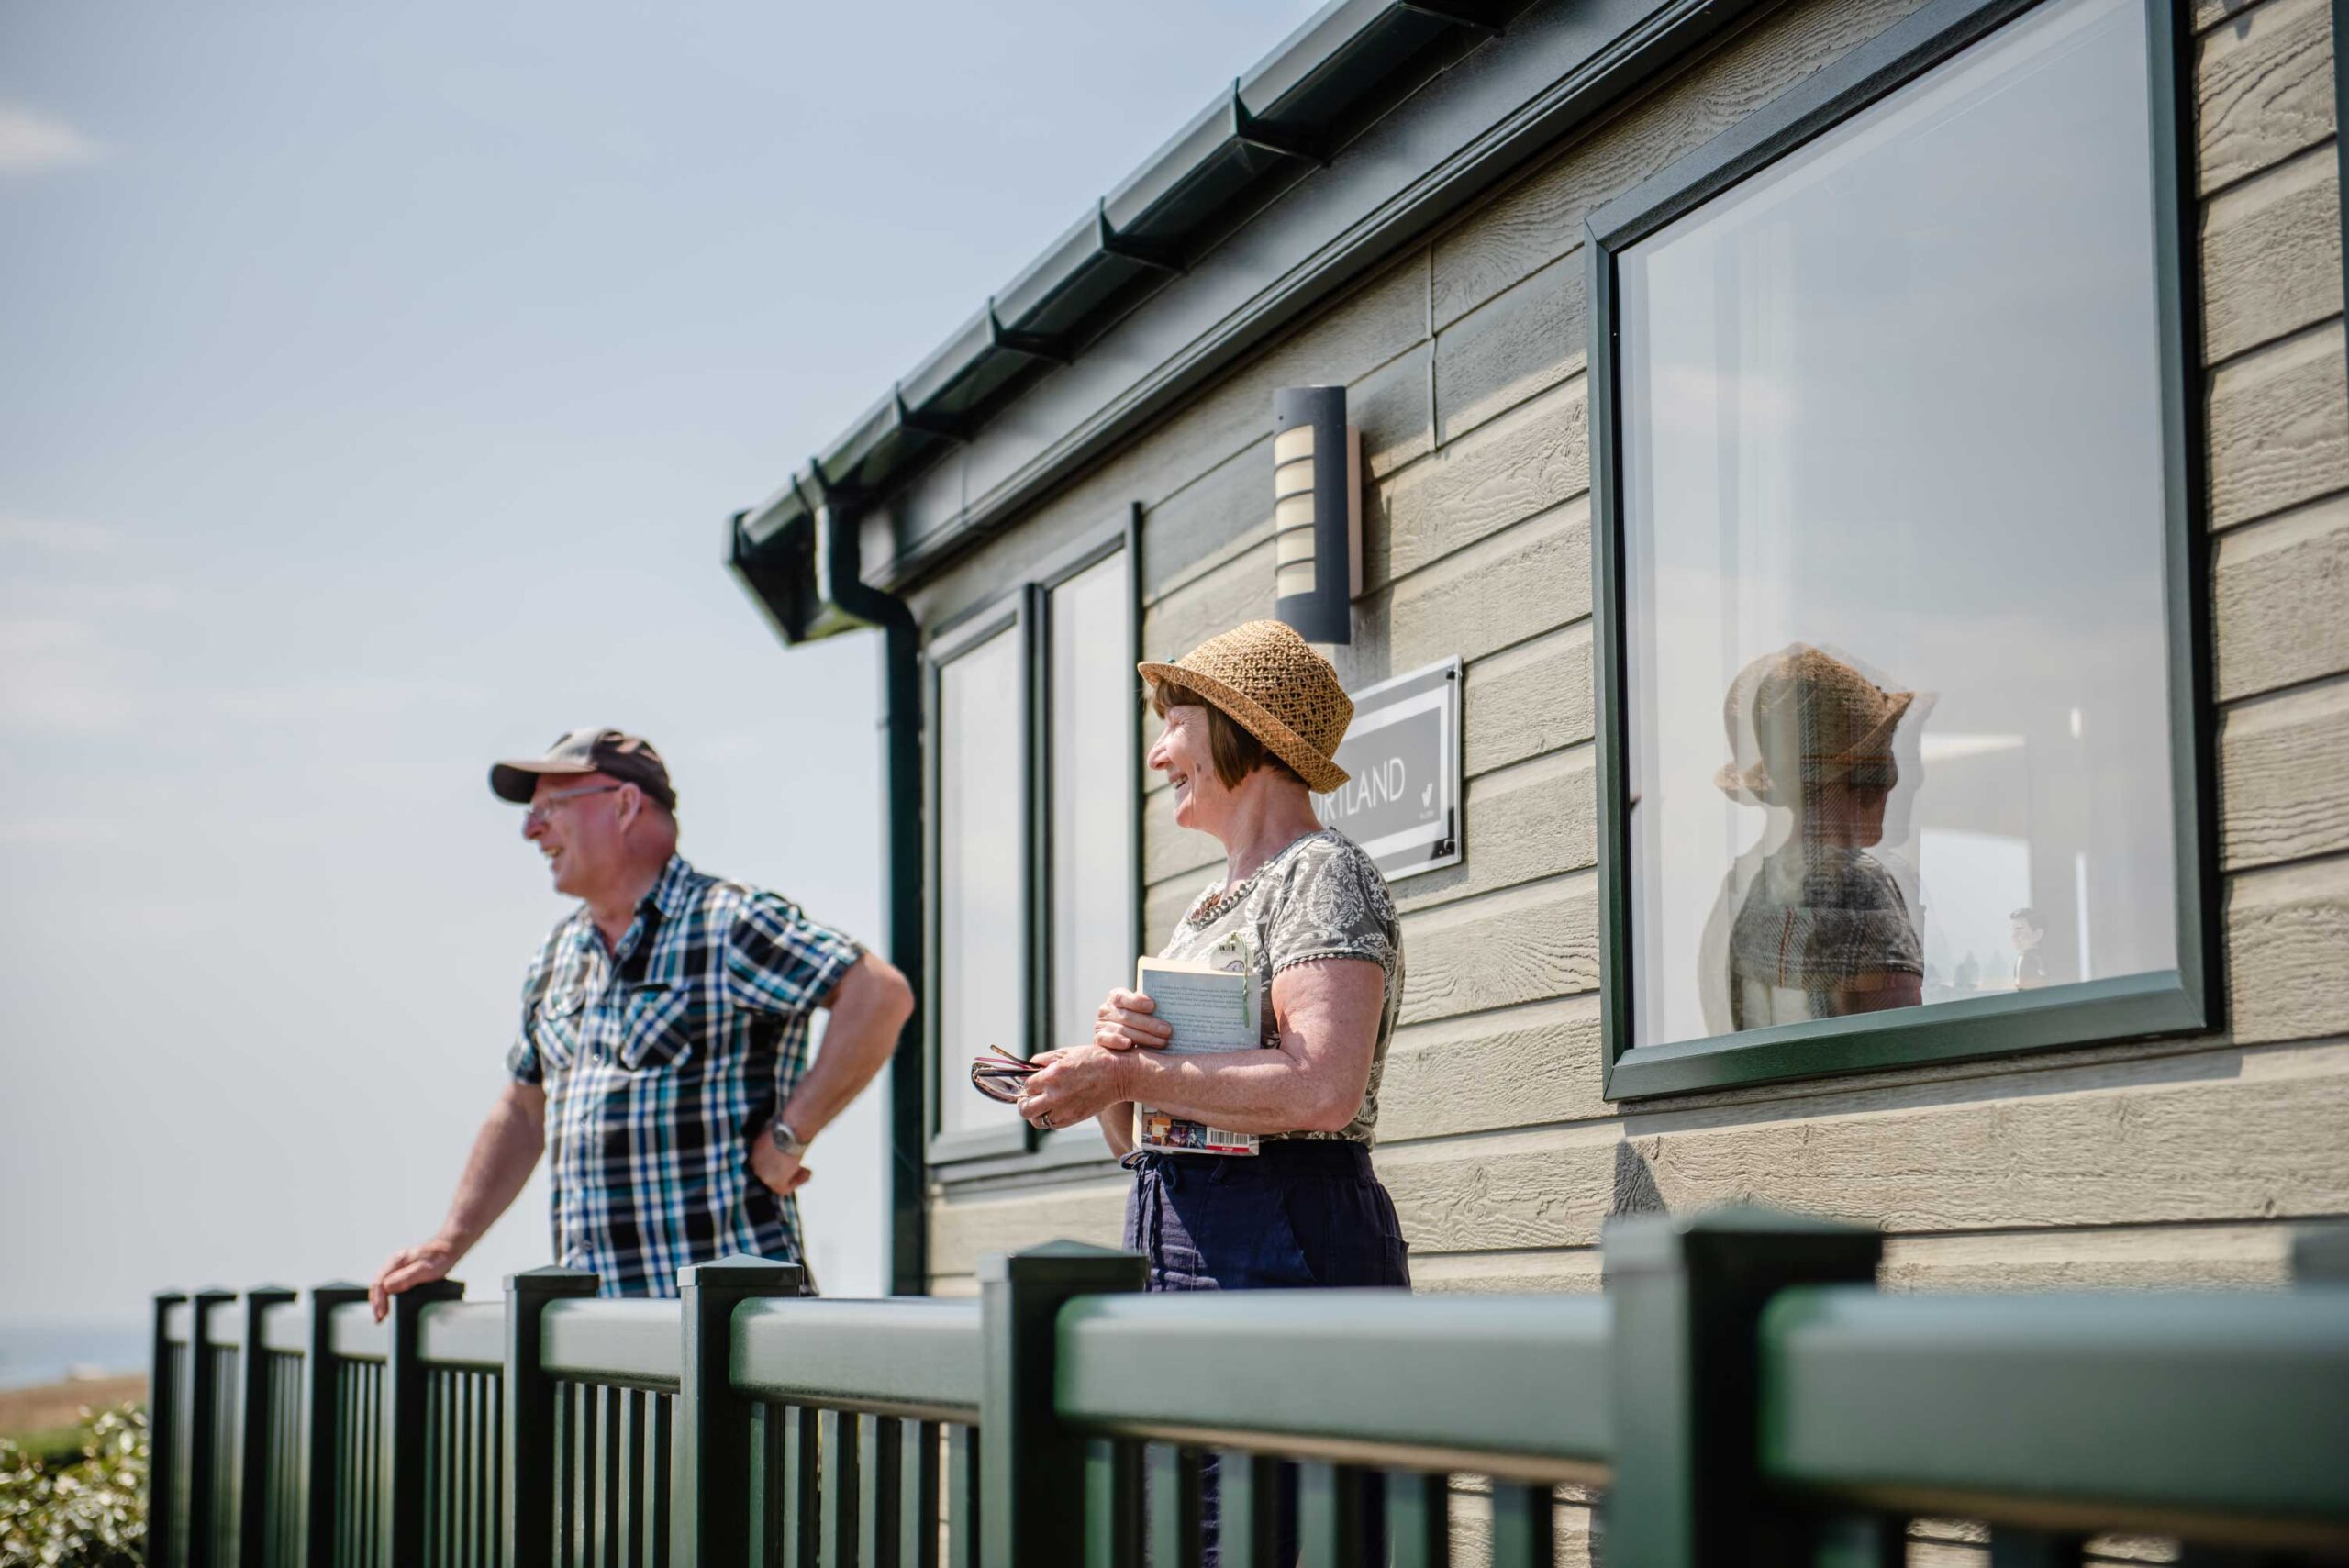 Mid Wales Caravan Parks Excited to Welcome Back English Customers